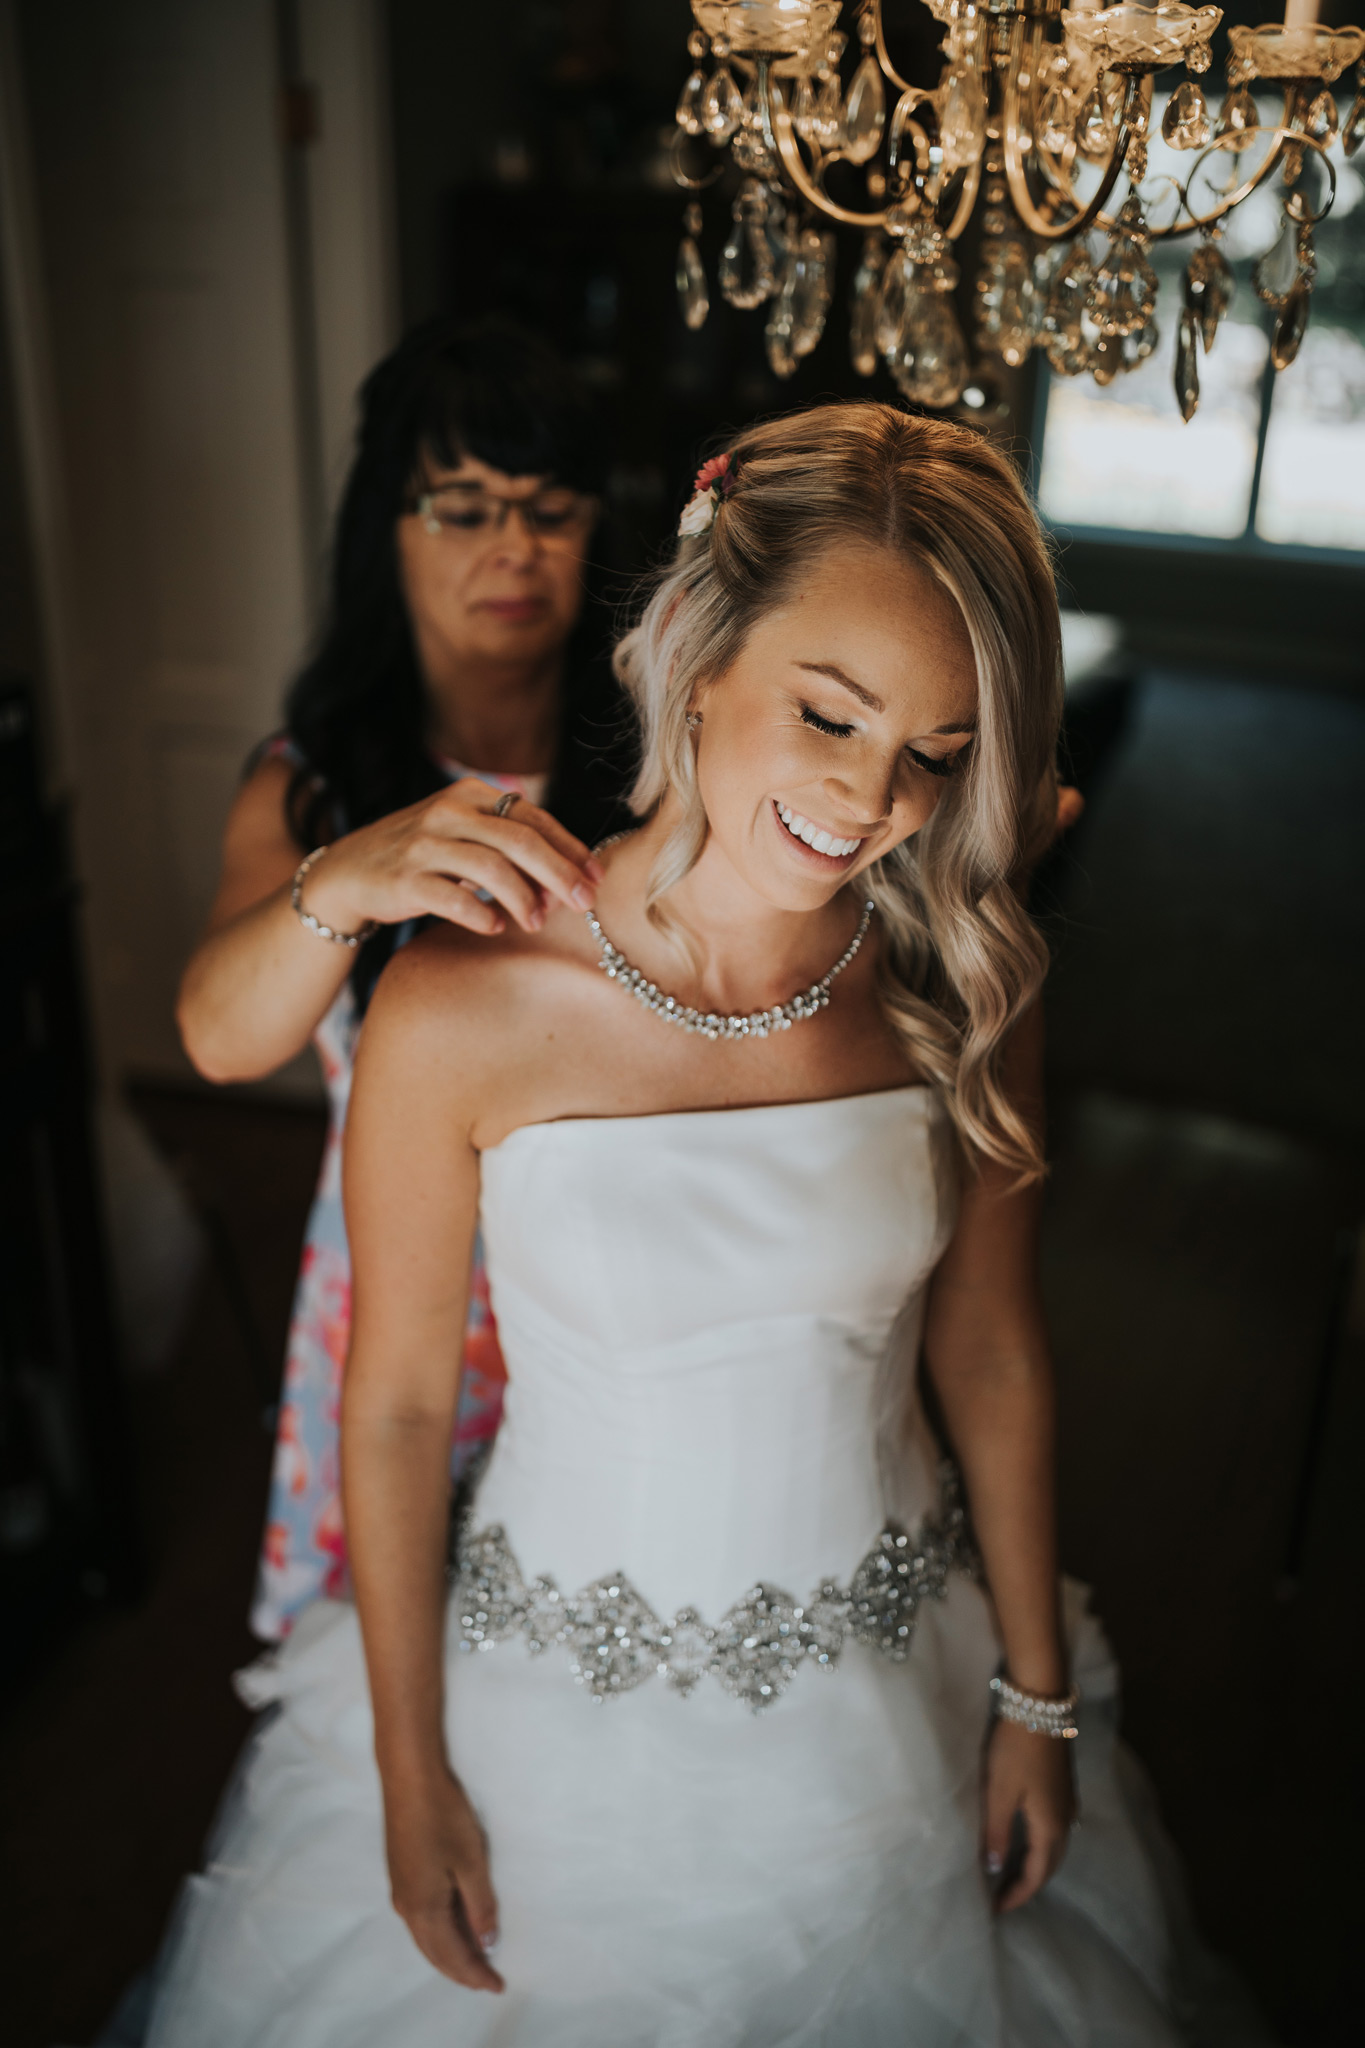 brides mother puts necklace on bride